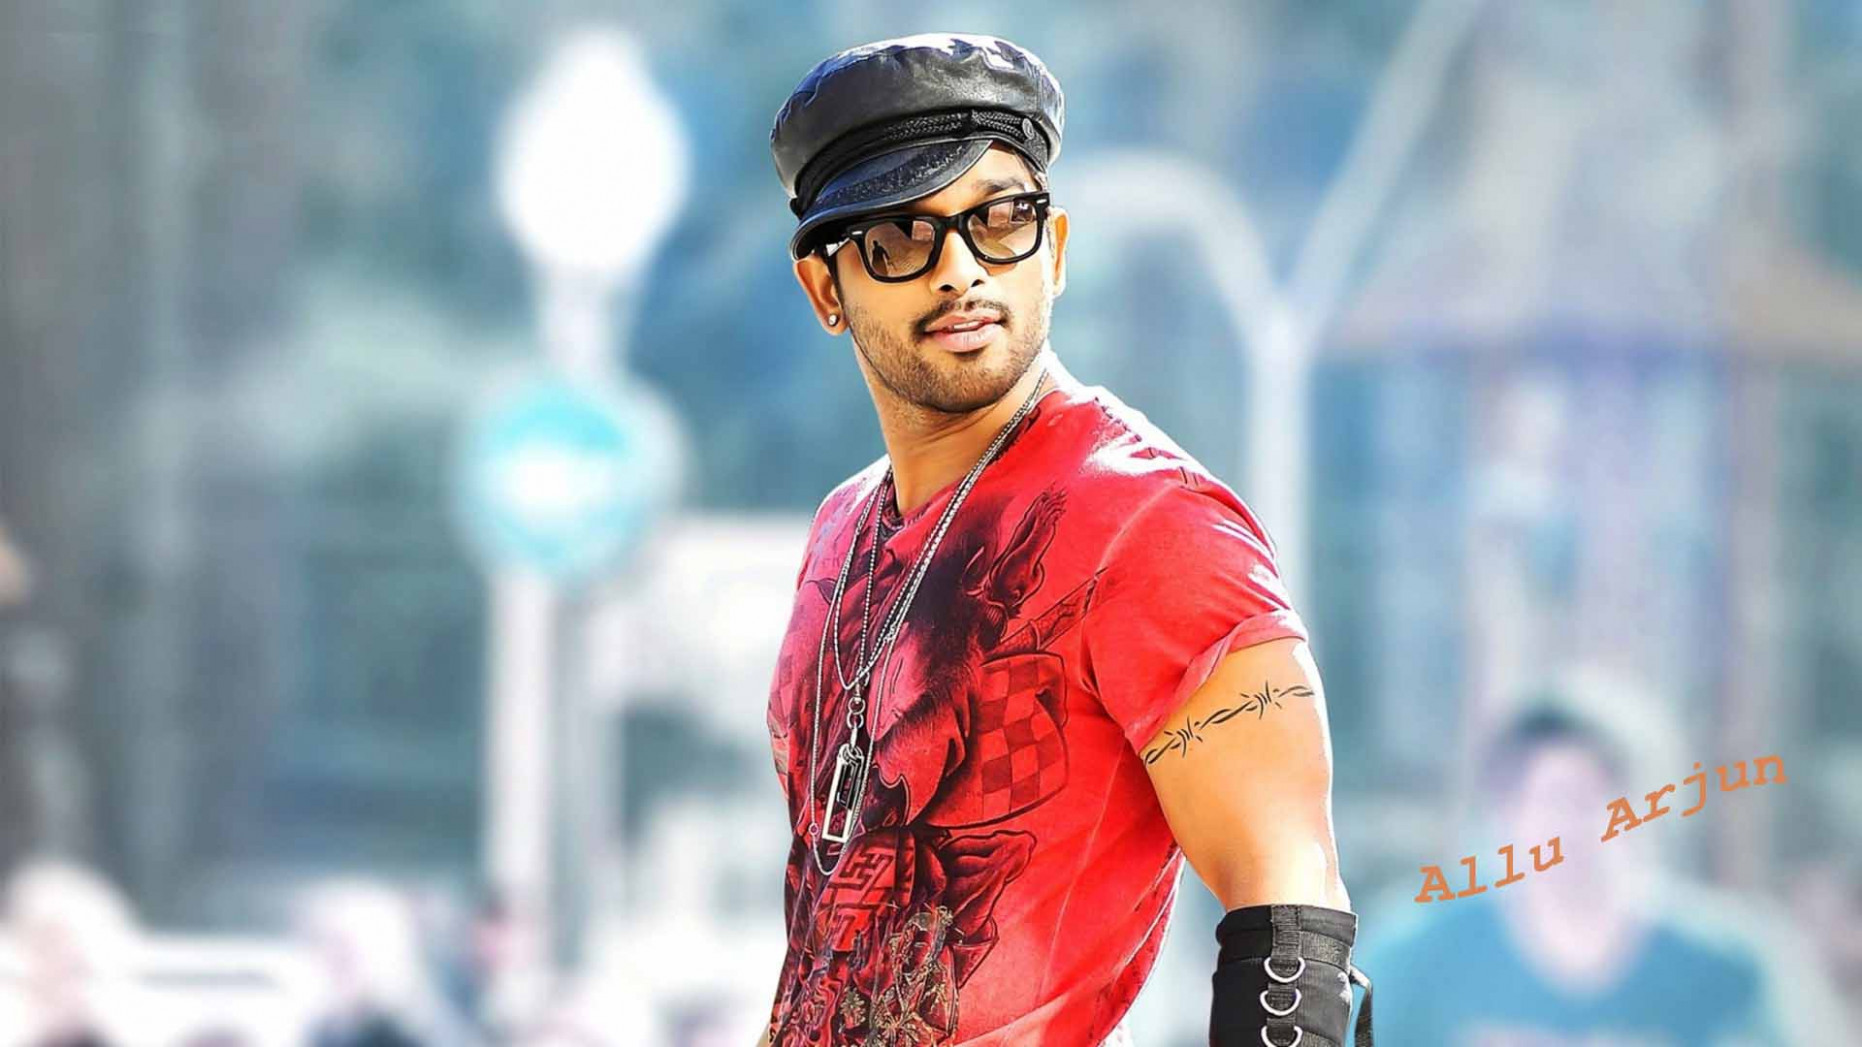 South Indian stylish hero Allu Arjun in red t shirt high ...